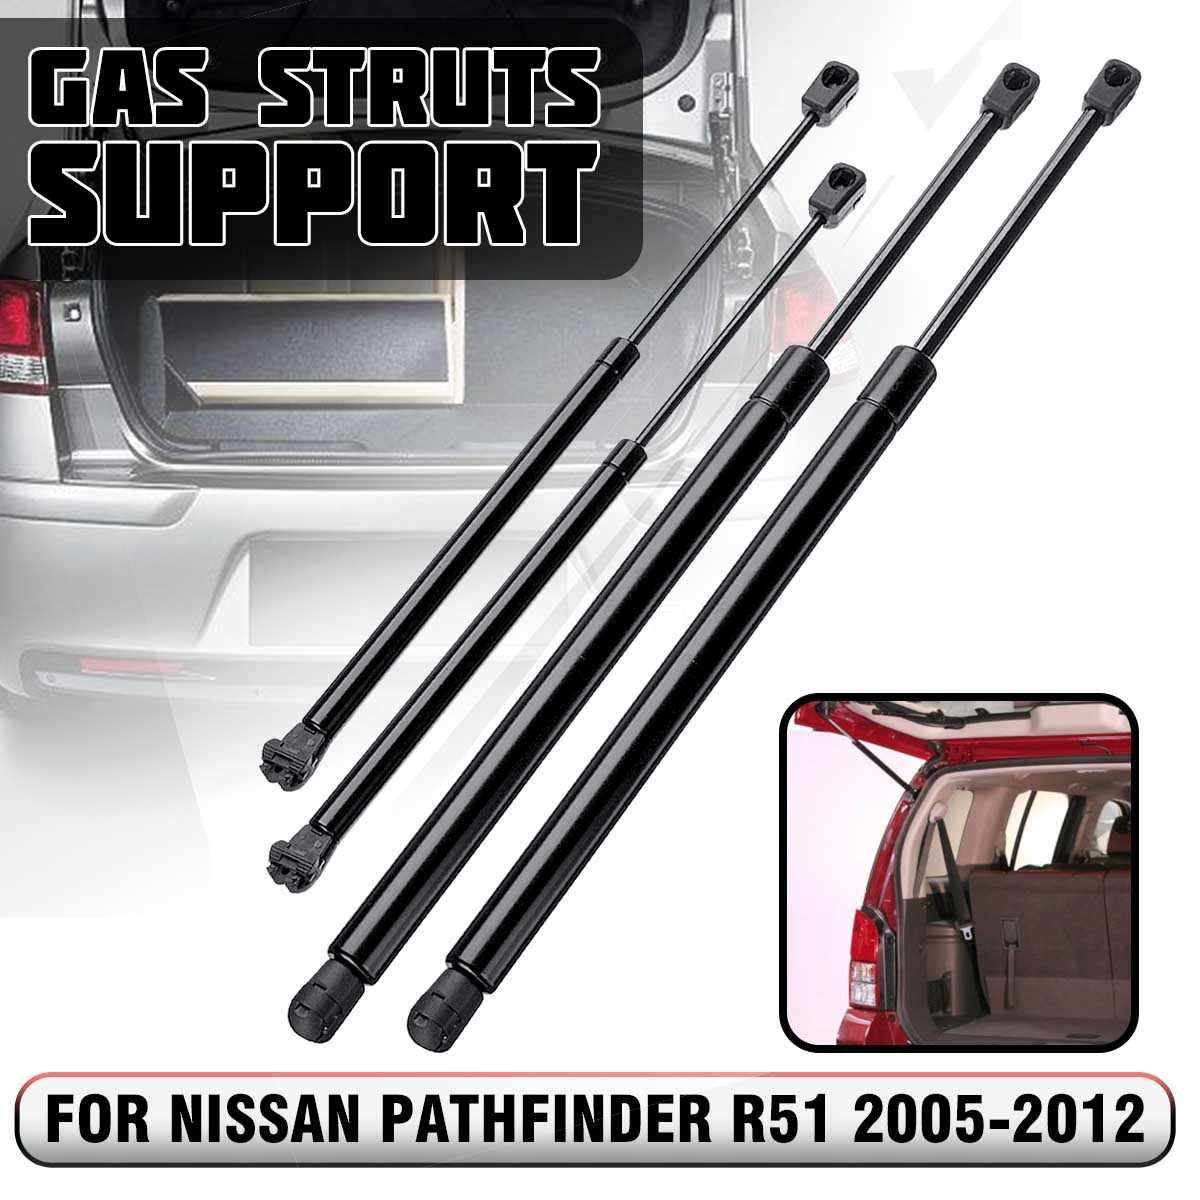 4pcs Rear Window /& Tailgate Boot Gas Spring Struts Support for Nissan Pathfinder R51 2005 2006 2007 2008 2009 2010 2011 2012